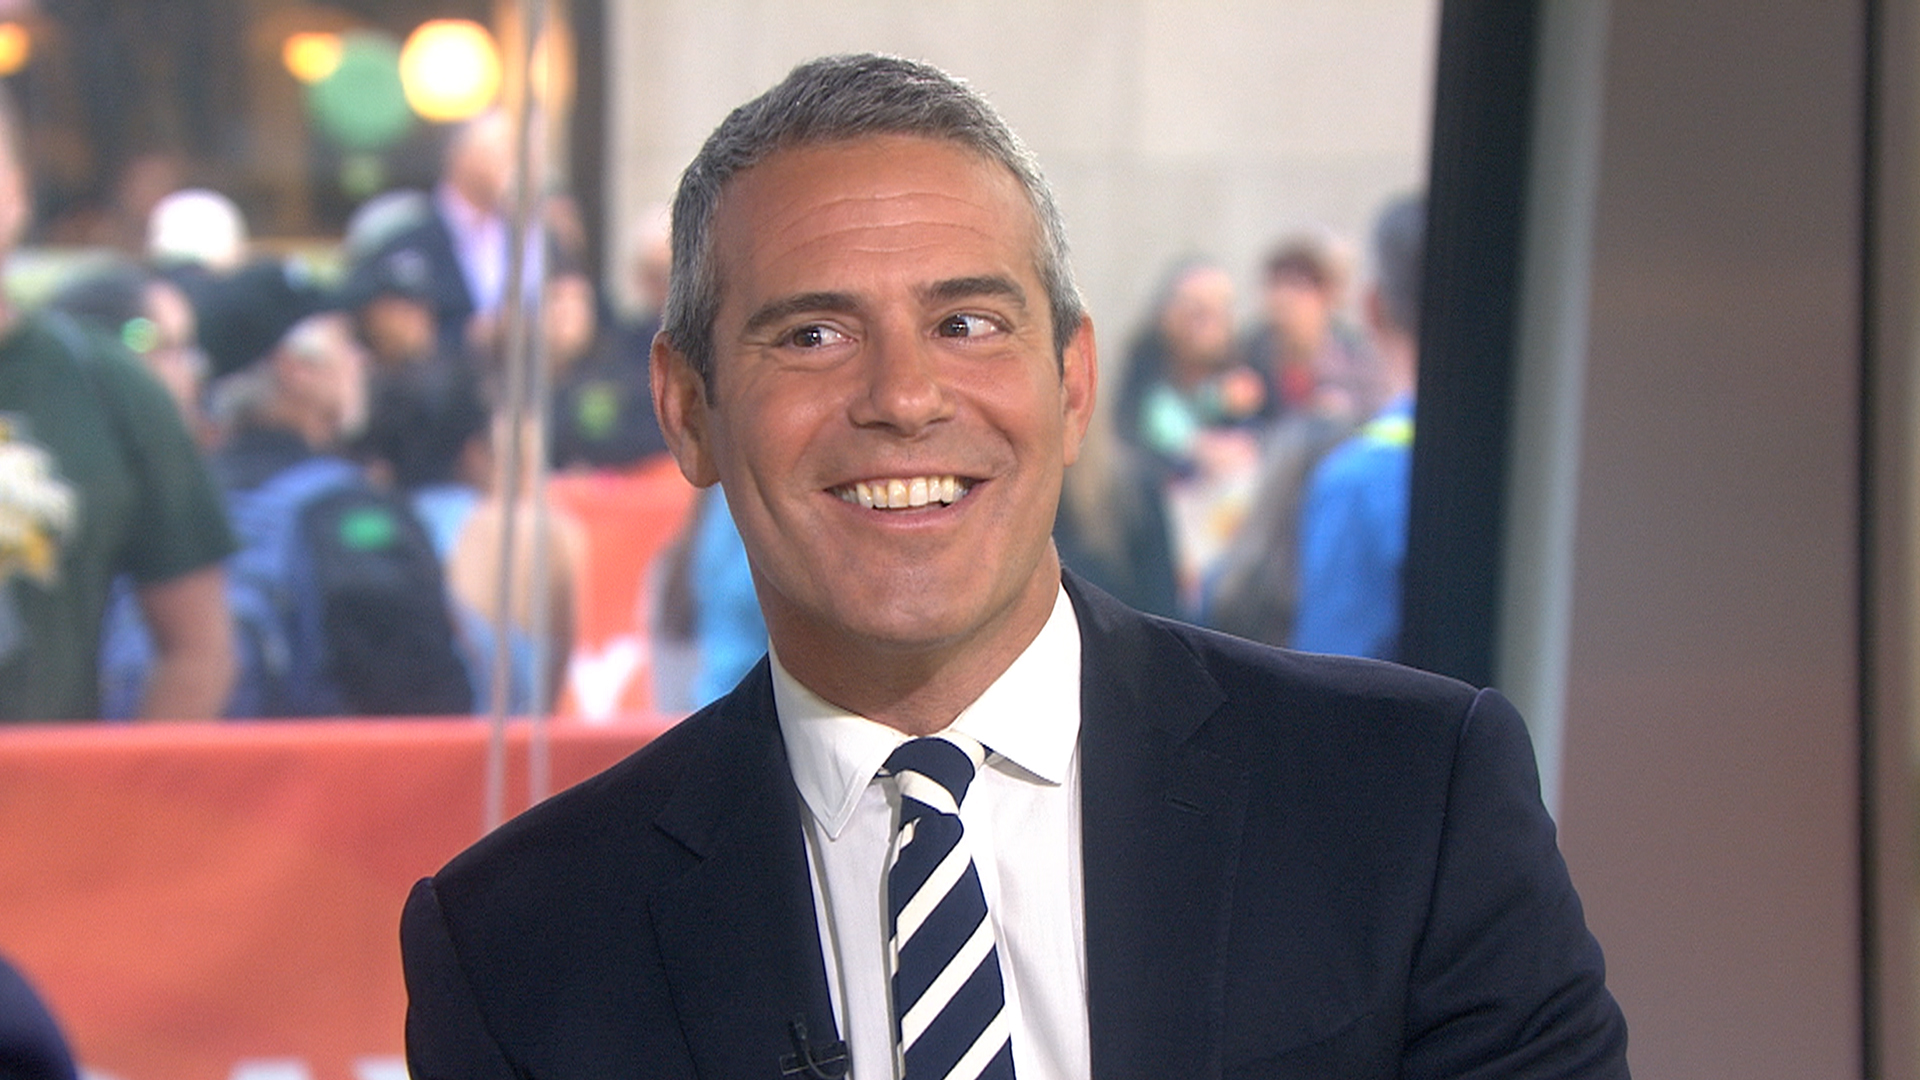 Andy cohen new show-7682